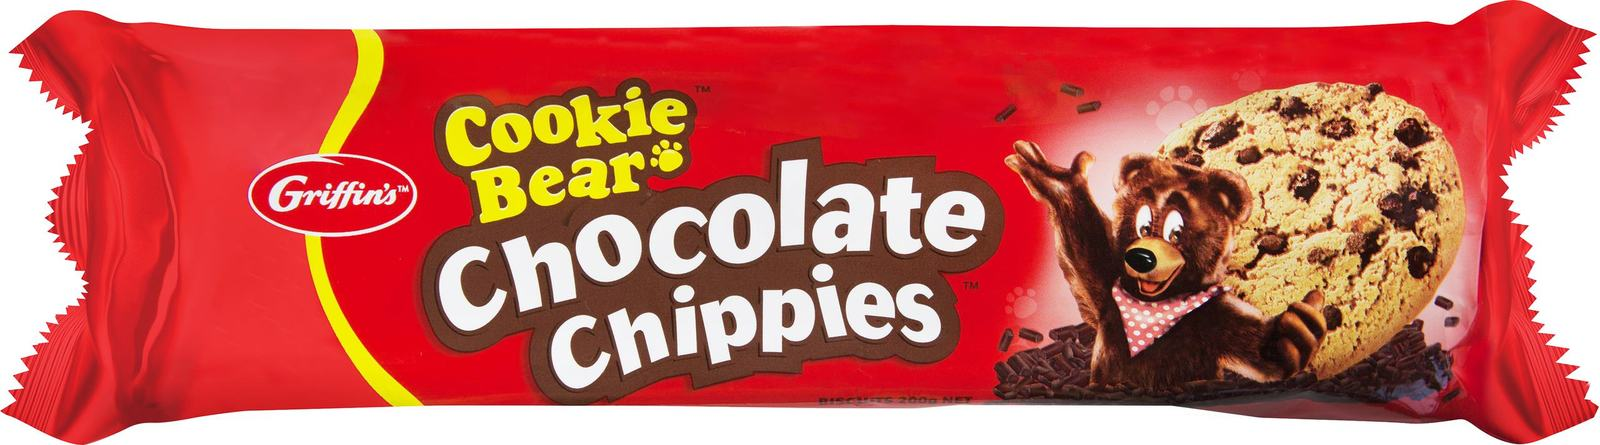 Griffins Cookie Bear Chocolate Chippies (200g) image